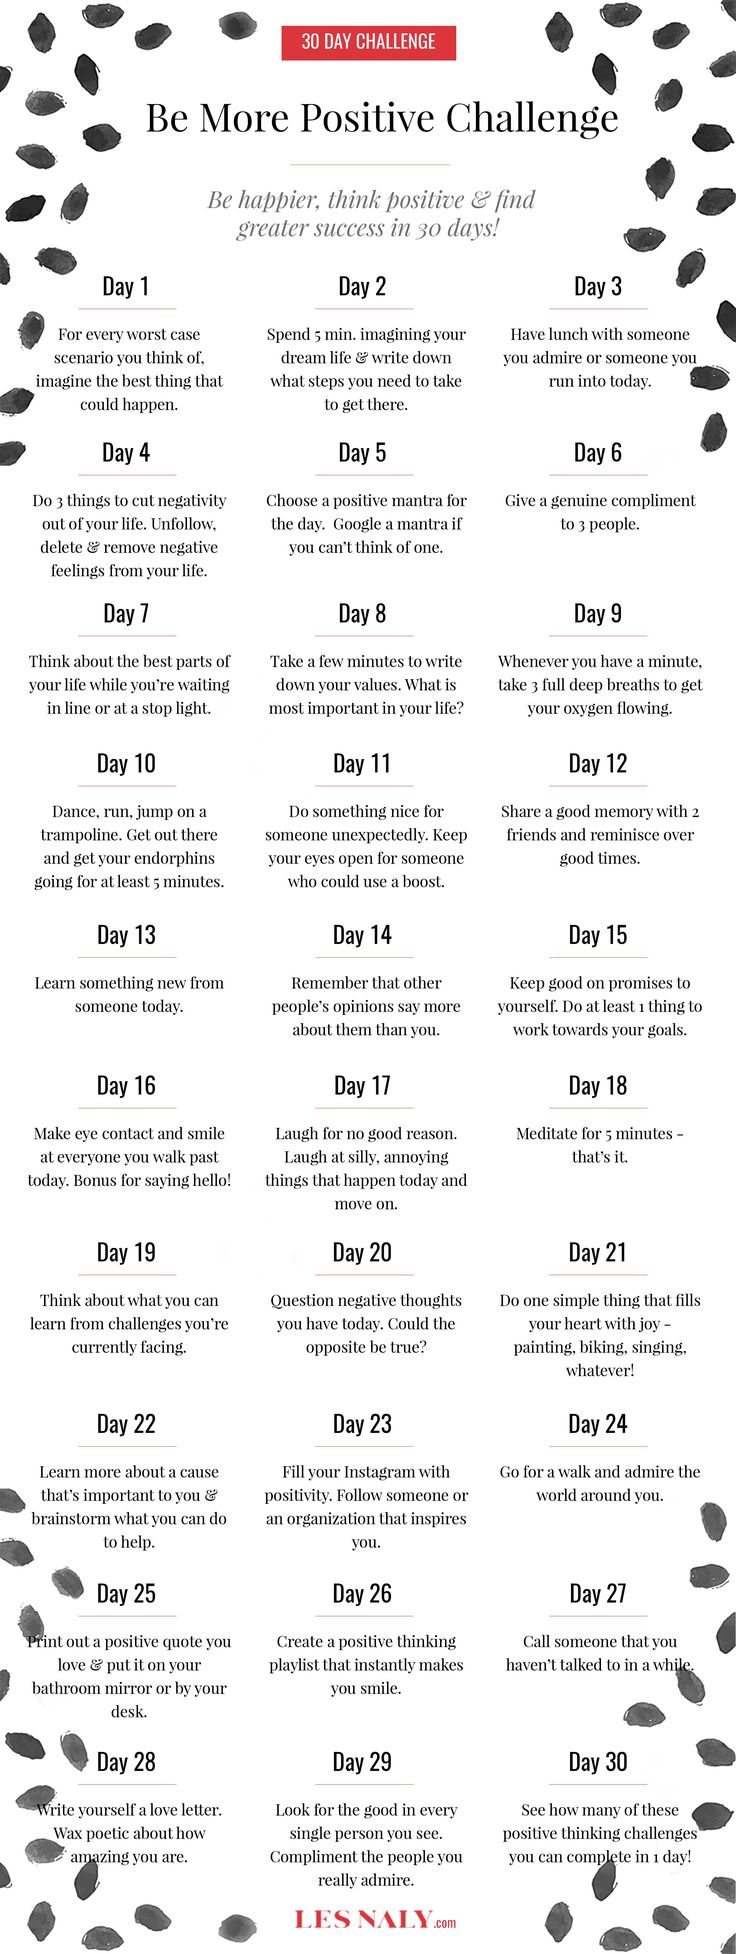 30 Day Be More Positive Challenge: Be Happier, Think Positive, & Find Greater Success in 30 Days! - Les Naly